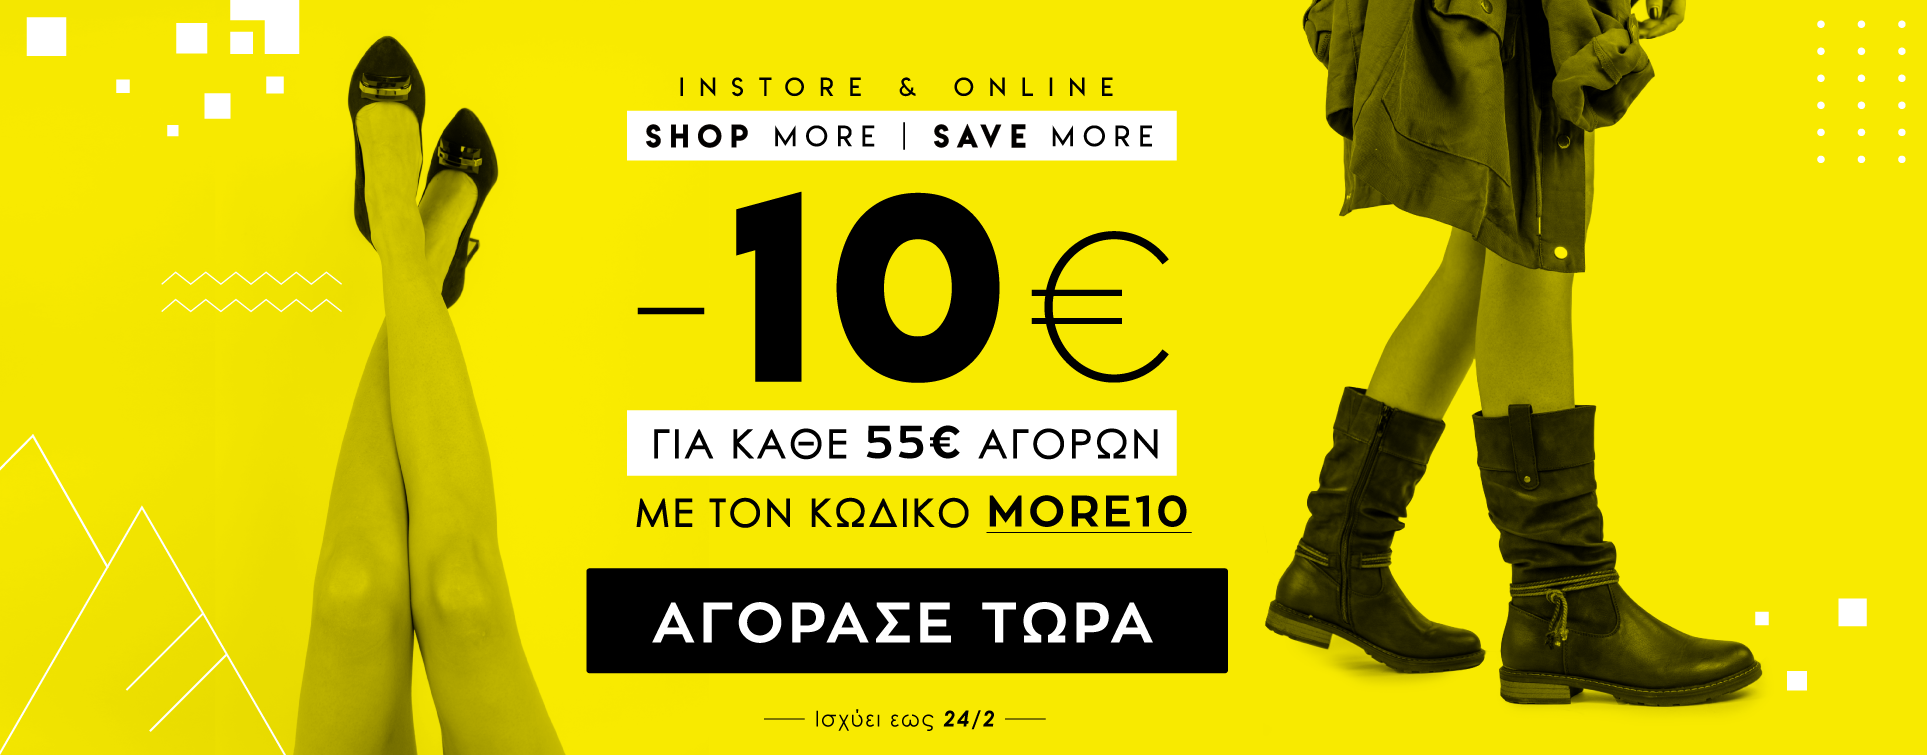 -10€ ΕΚΠΤΩΣΗ ΓΙΑ ΑΓΟΡΕΣ 55€ | Παπούτσια Parex,save_more,save_more EXTRA -10% OFFgr,save_more EXTRA -10% OFFgr,4